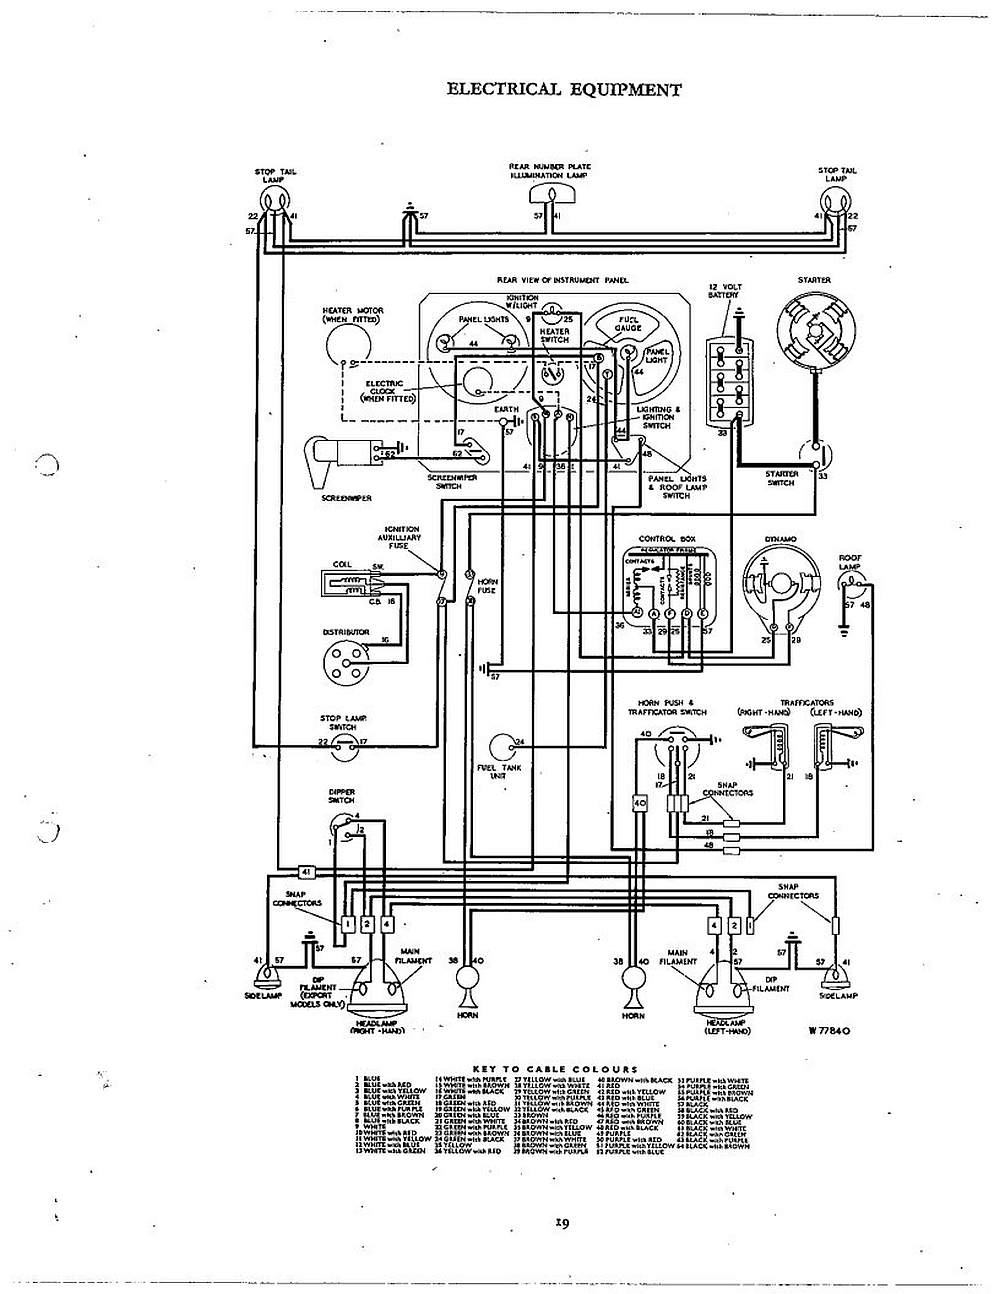 Triumph Tr6 Wiring Diagram Starting Know About 1972 1971 Another Blog U2022 Rh Ok2 Infoservice Ru Pi